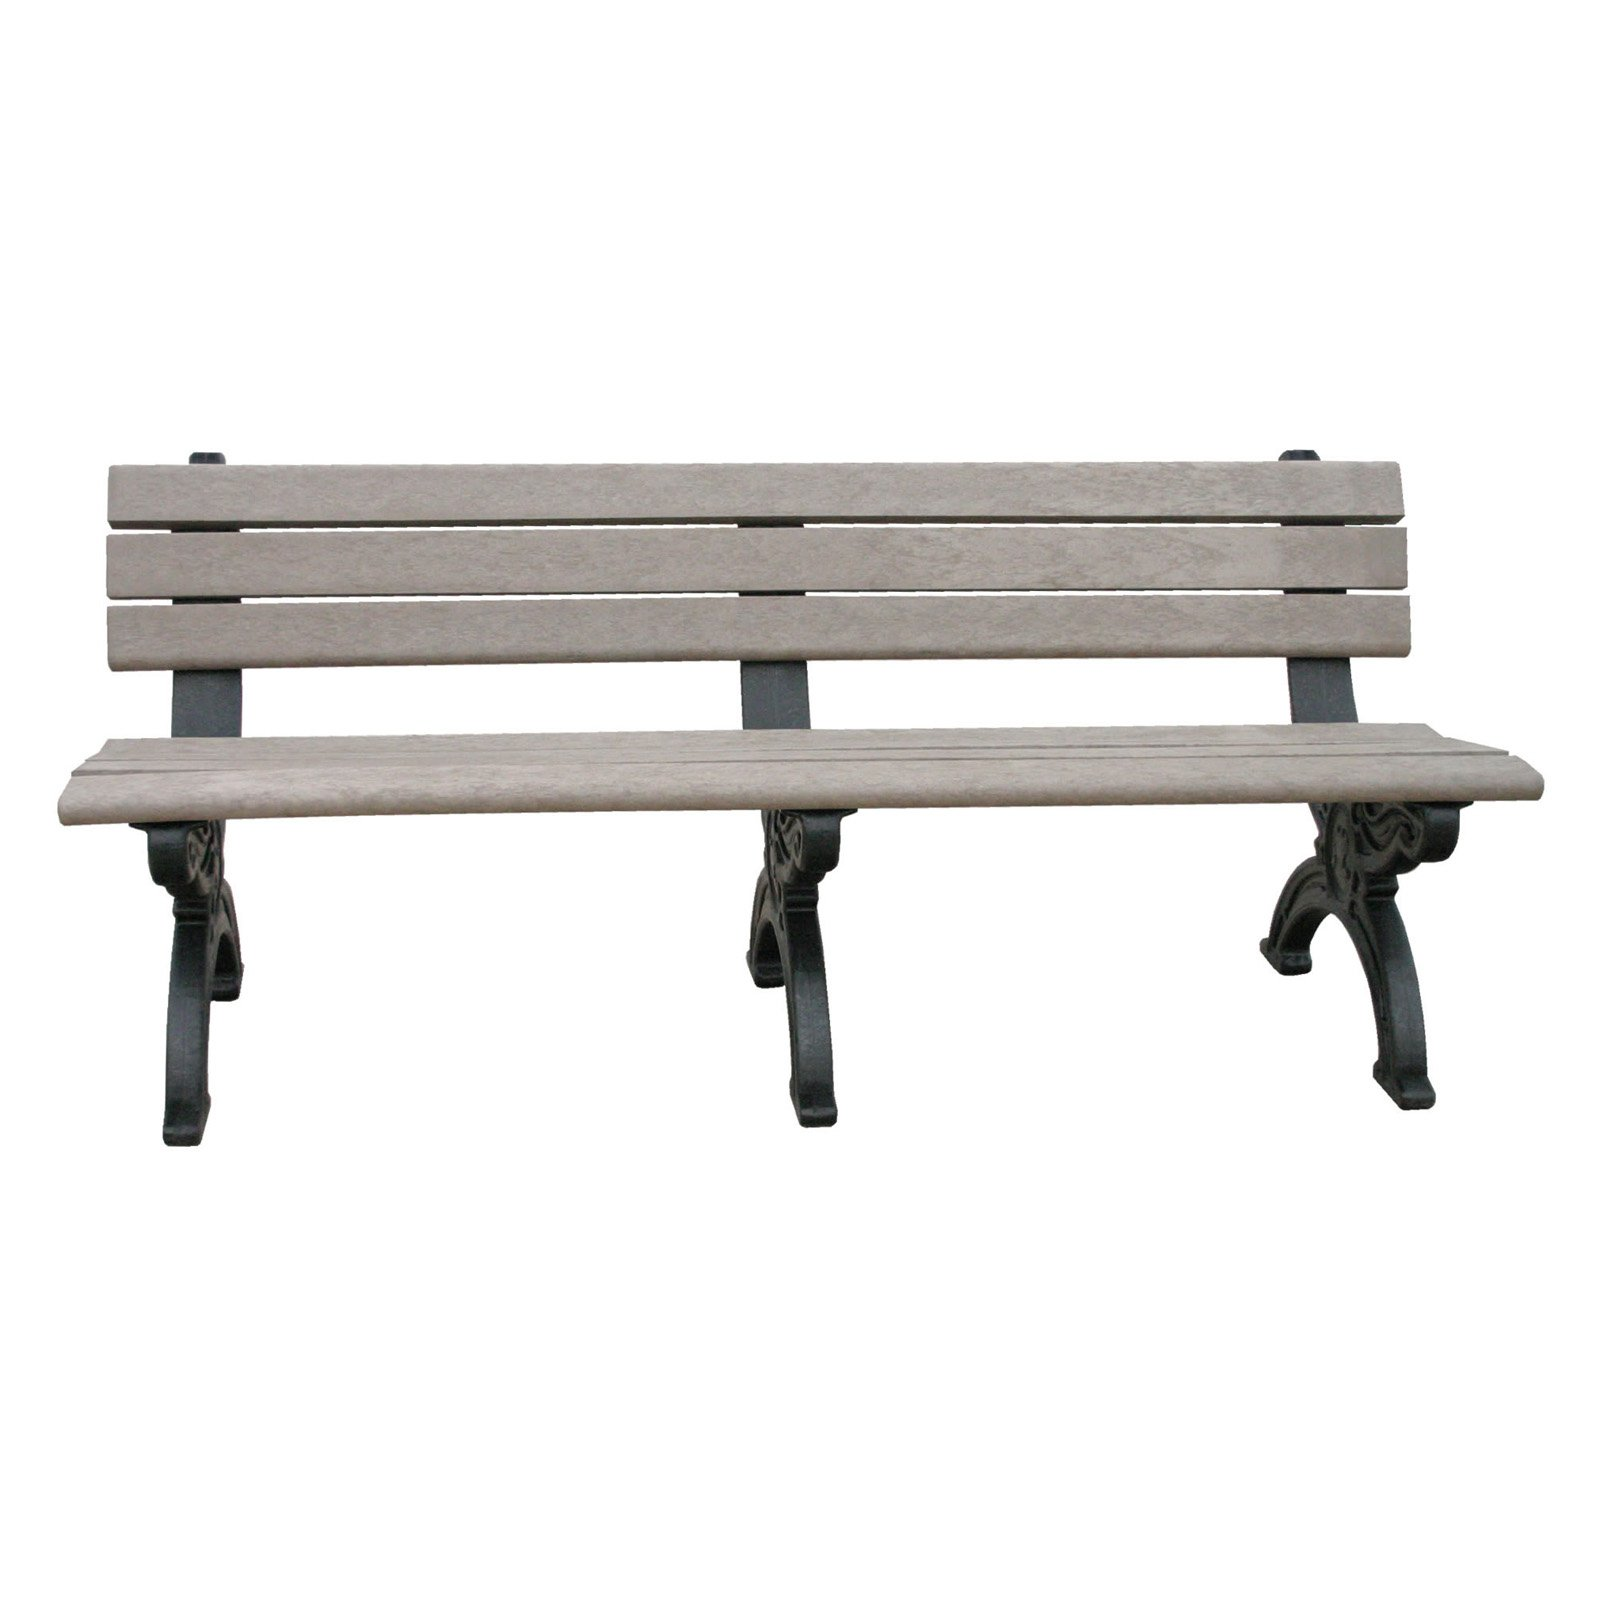 Polly Products Silhouette Recycled Plastic Backed Bench